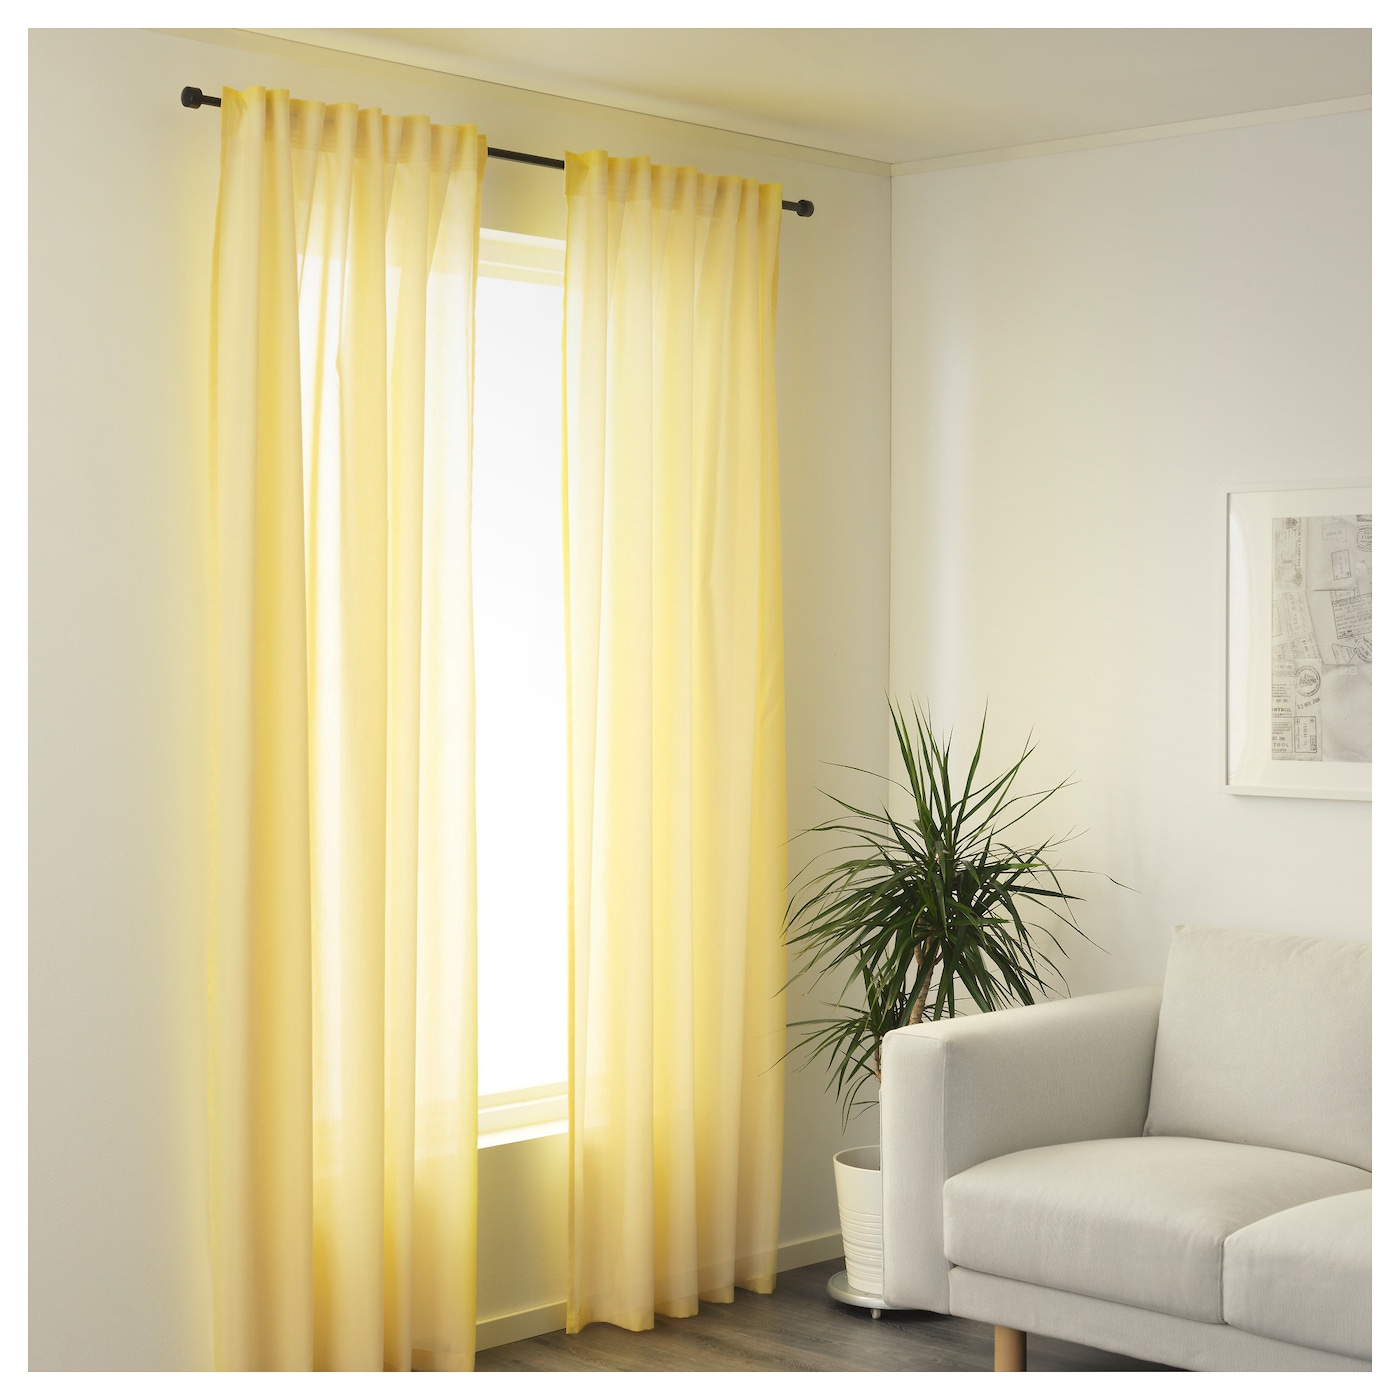 curtain decor for patio image archaicawful green ideas captivating outdoor designs drapes tips curtains ikea sheer panels